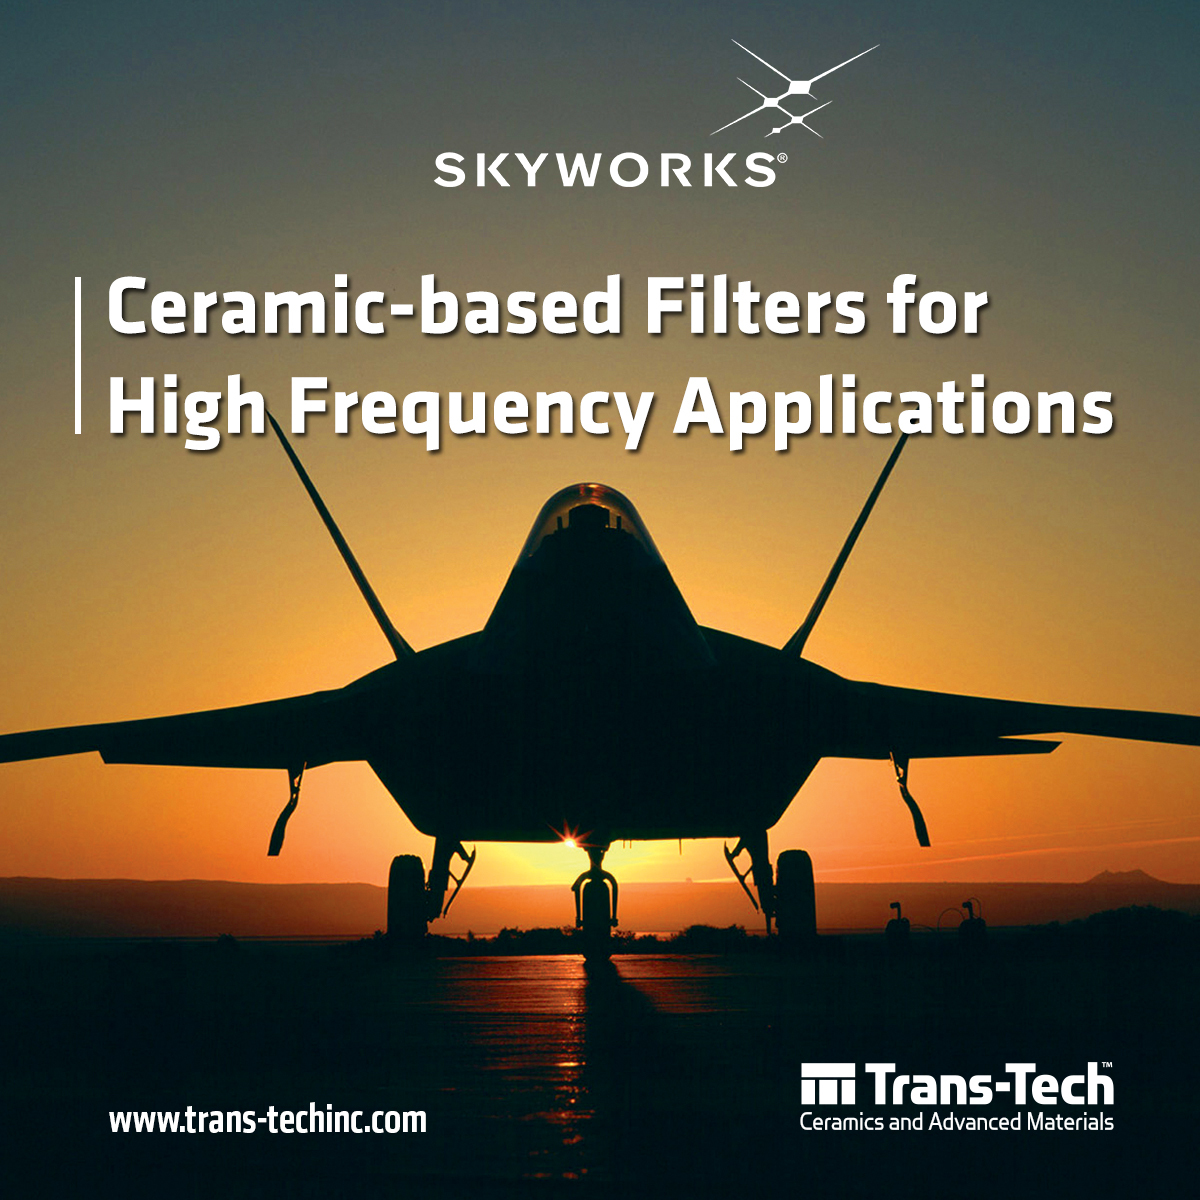 Skyworks Introduces Ceramic-based Filters for High Frequency